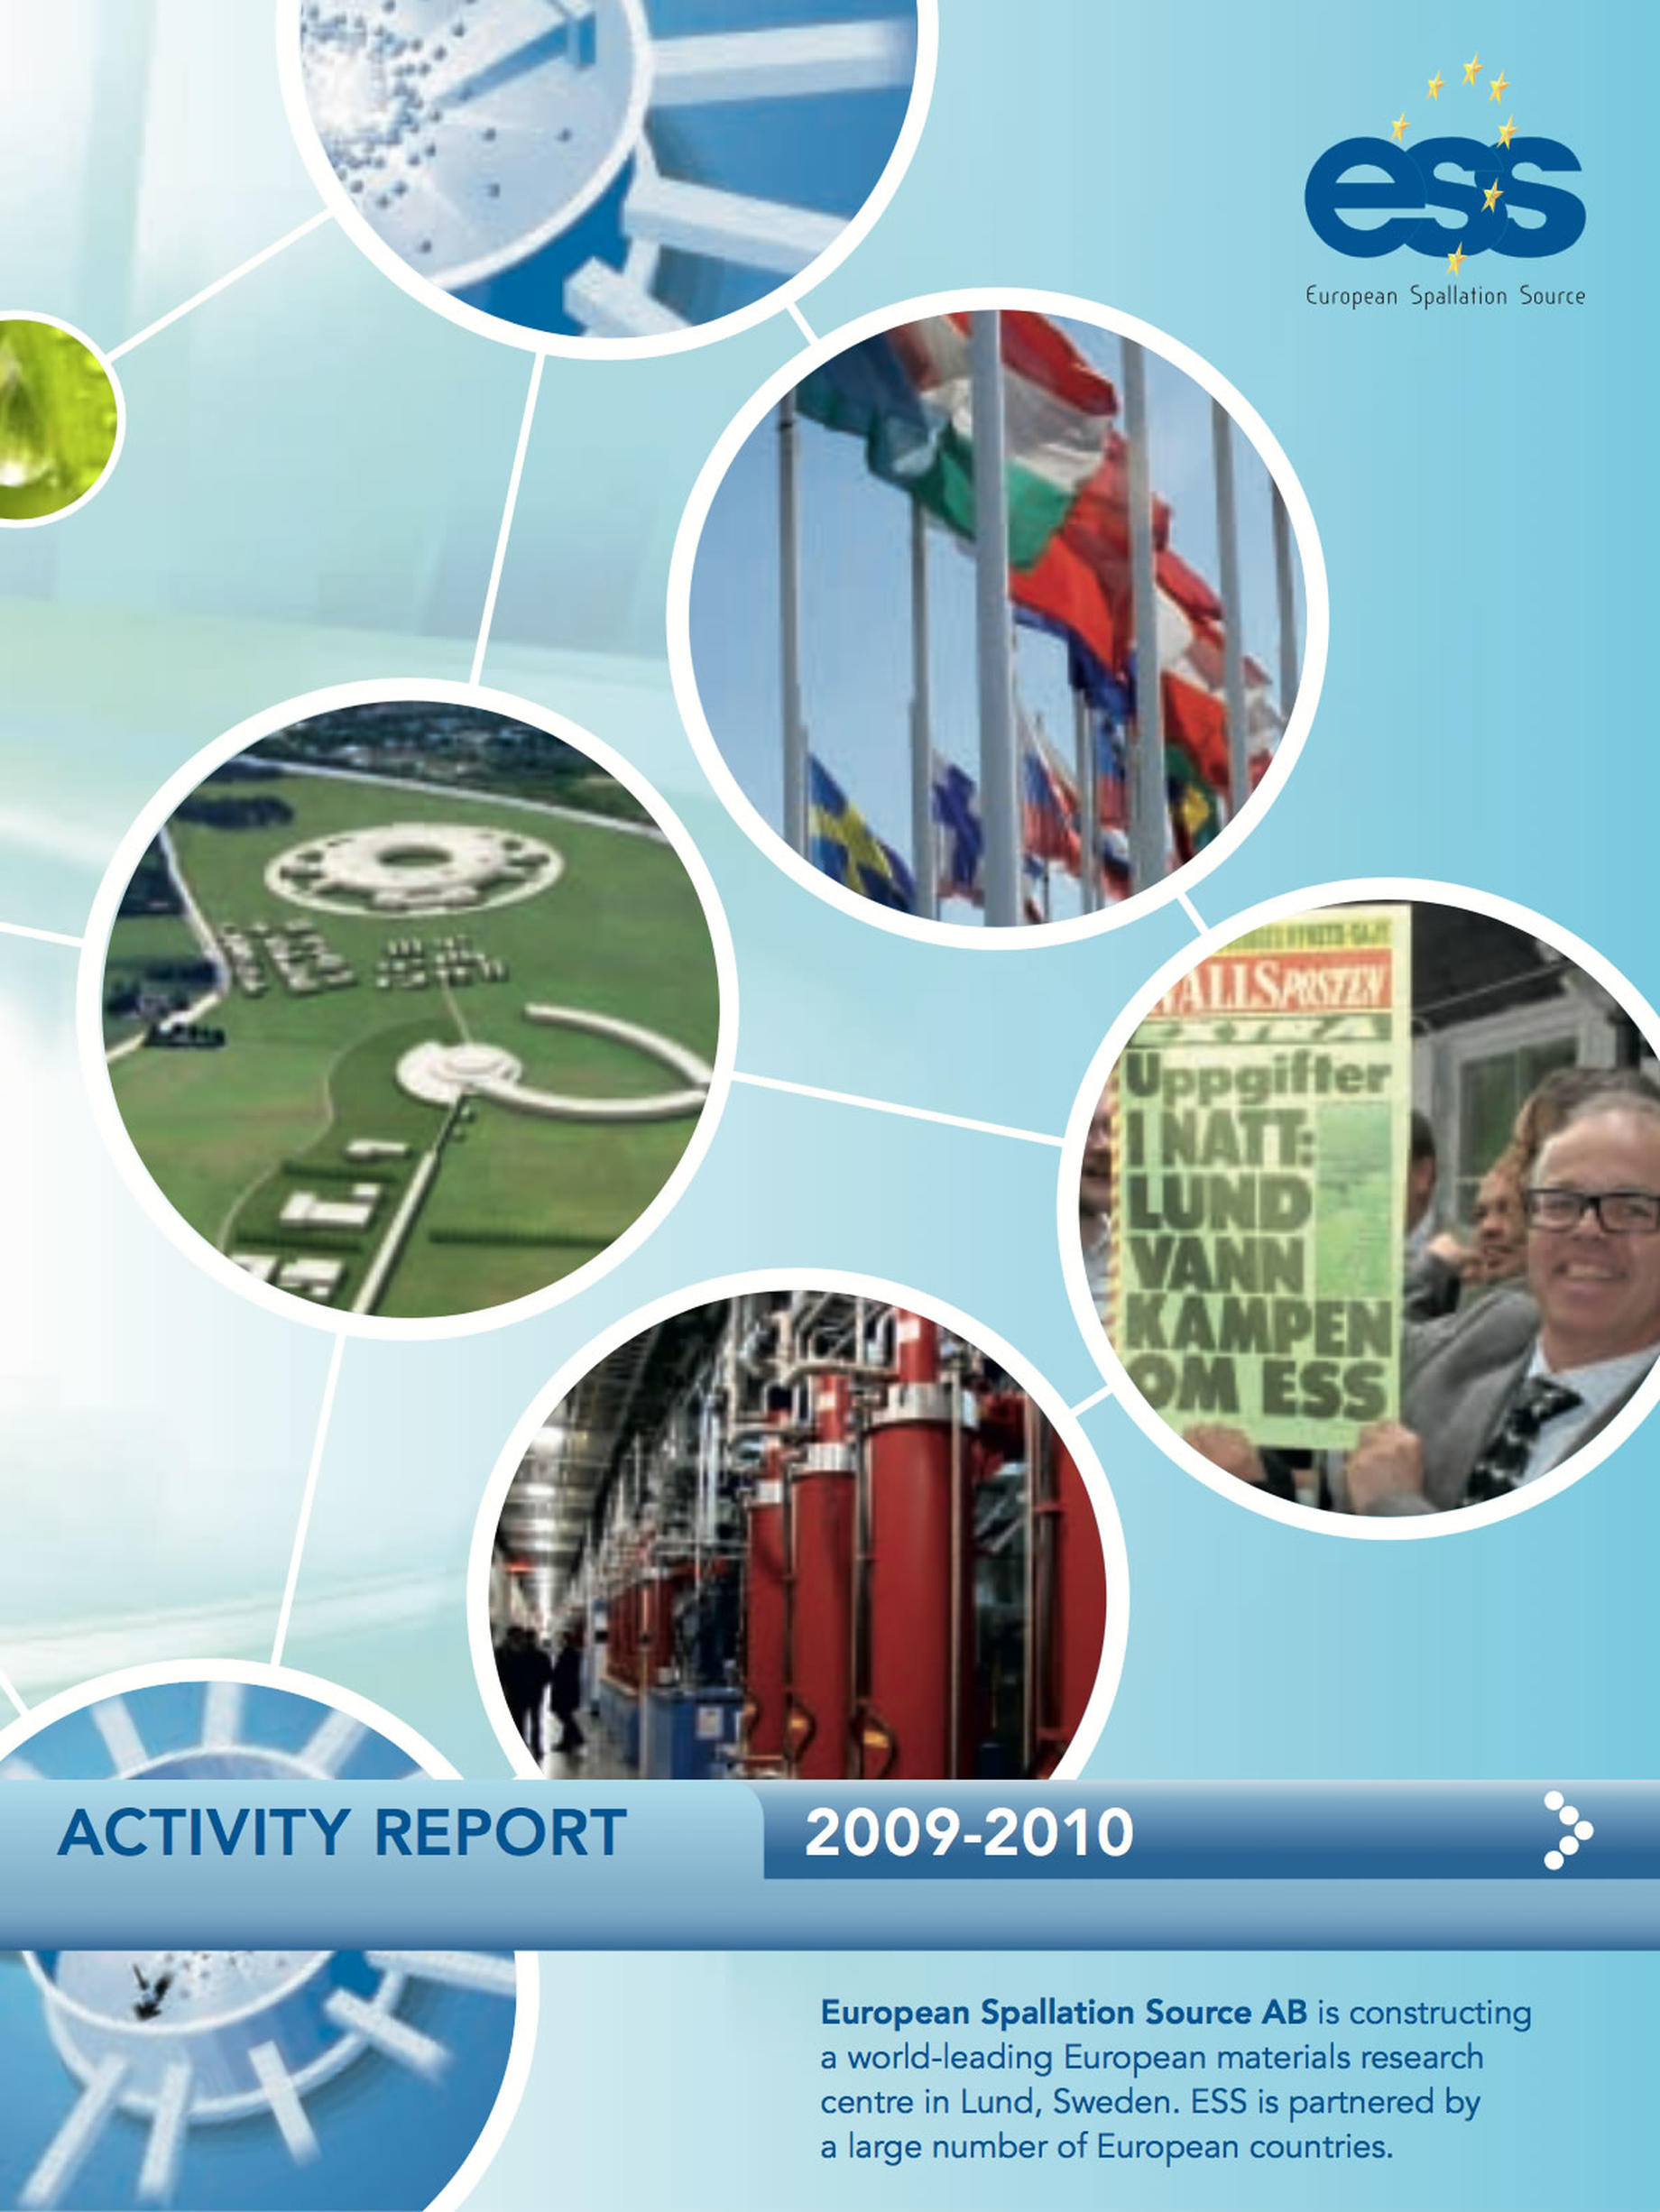 ActivityReport2009_2010_cover.jpg